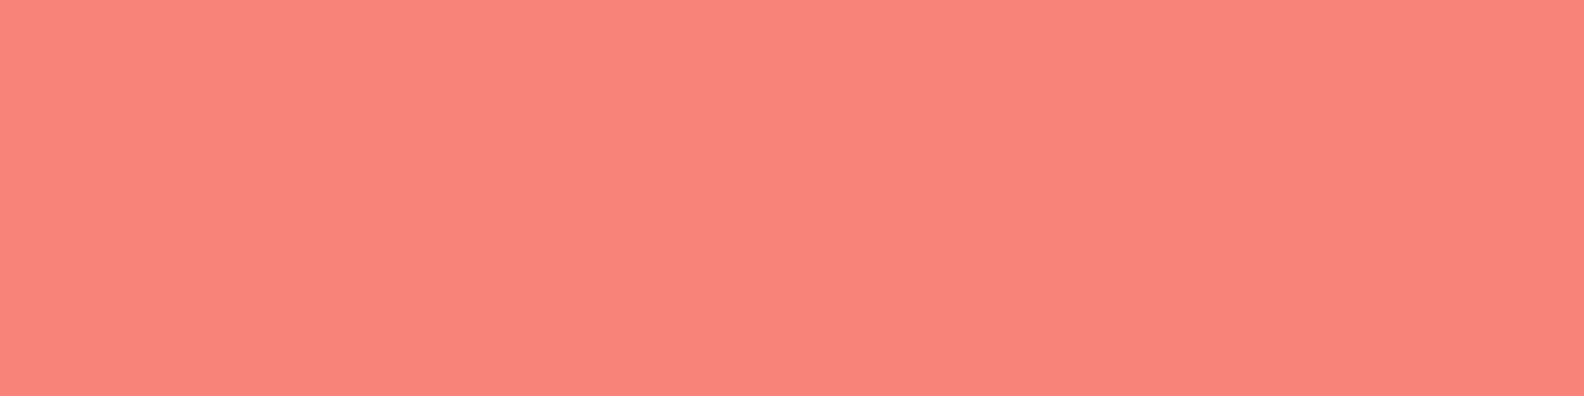 1584x396 Coral Pink Solid Color Background